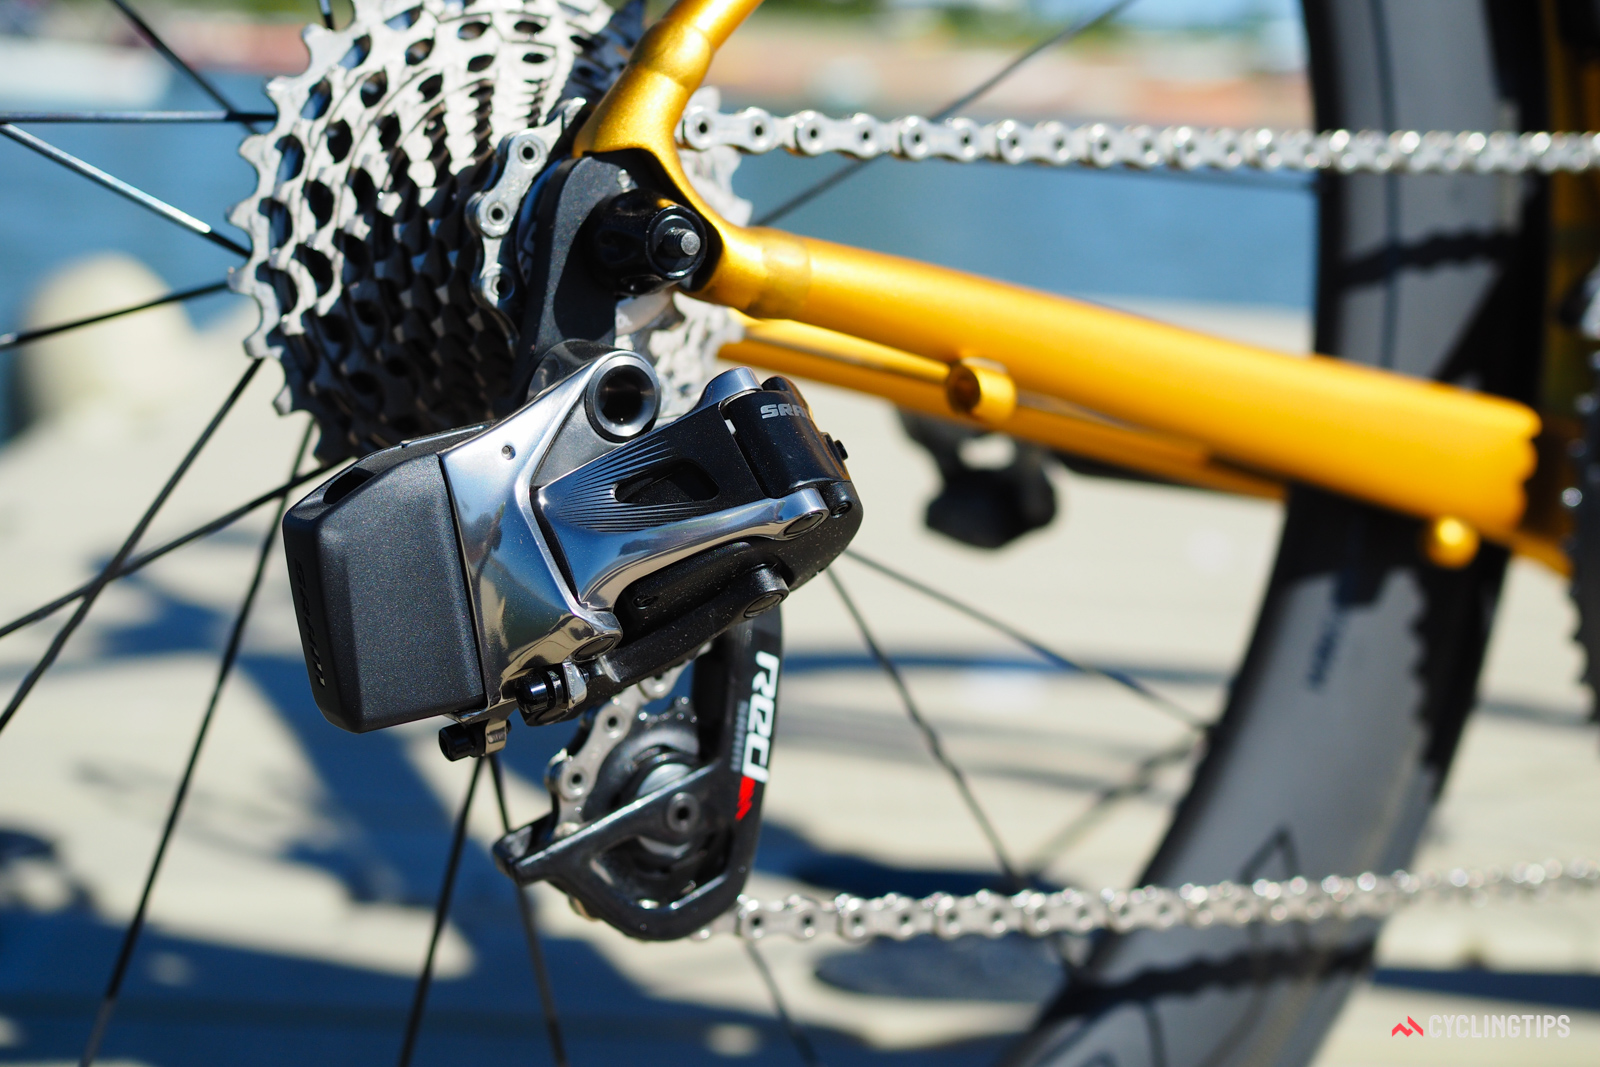 The SRAM Red eTap wireless electronic group continues to impress with crisp and reliable shift performance. It'd be nice if multiple shifts were executed a little more quickly, though.